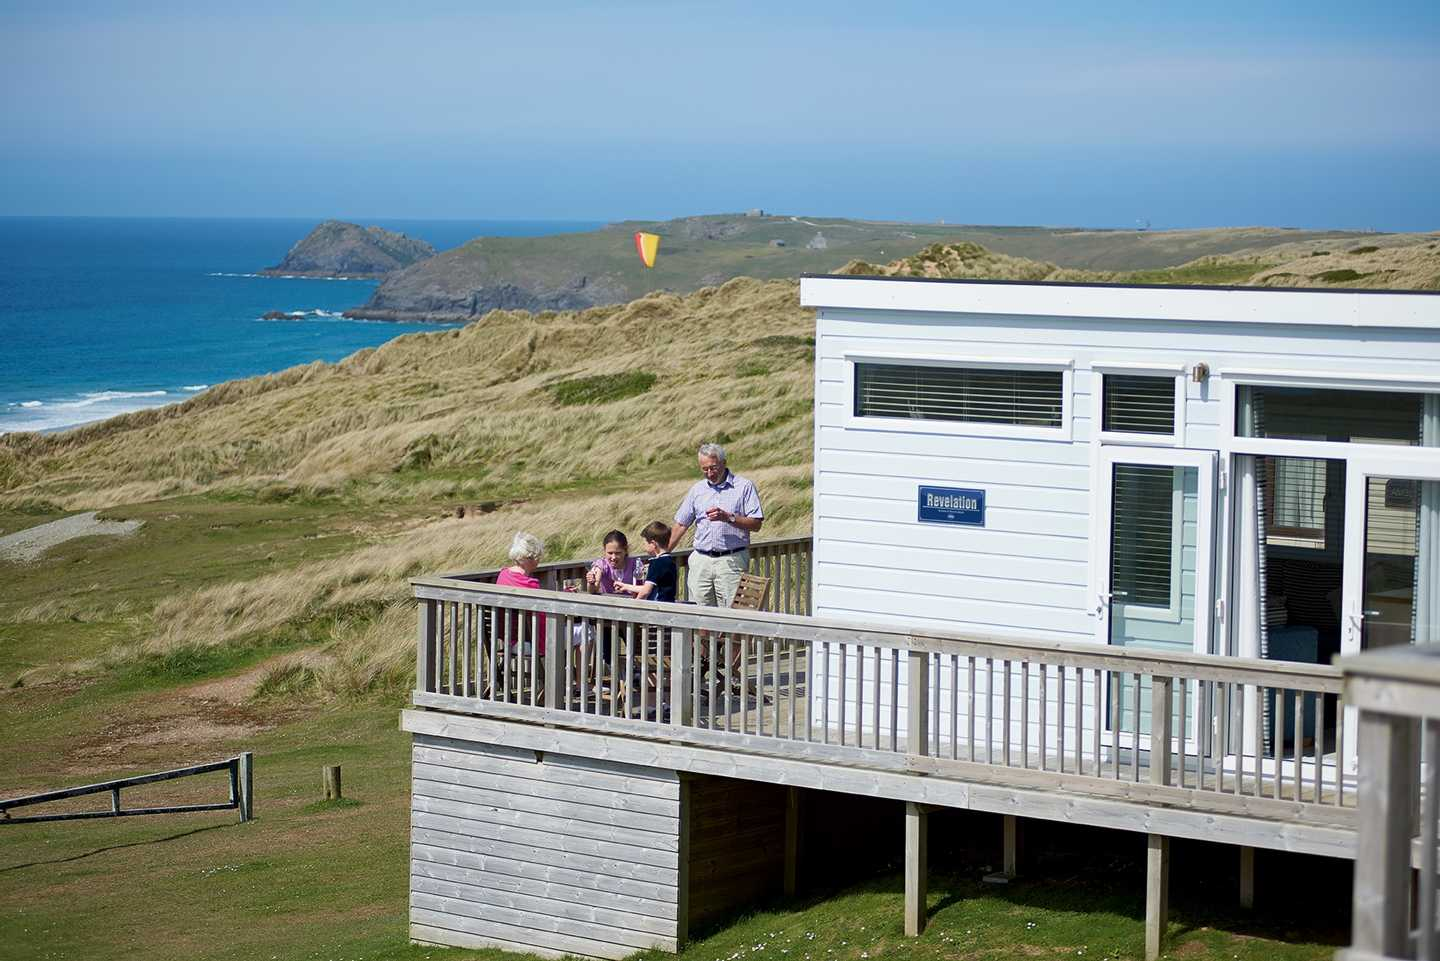 A holiday home with a sea view at Perran Sands in Cornwall